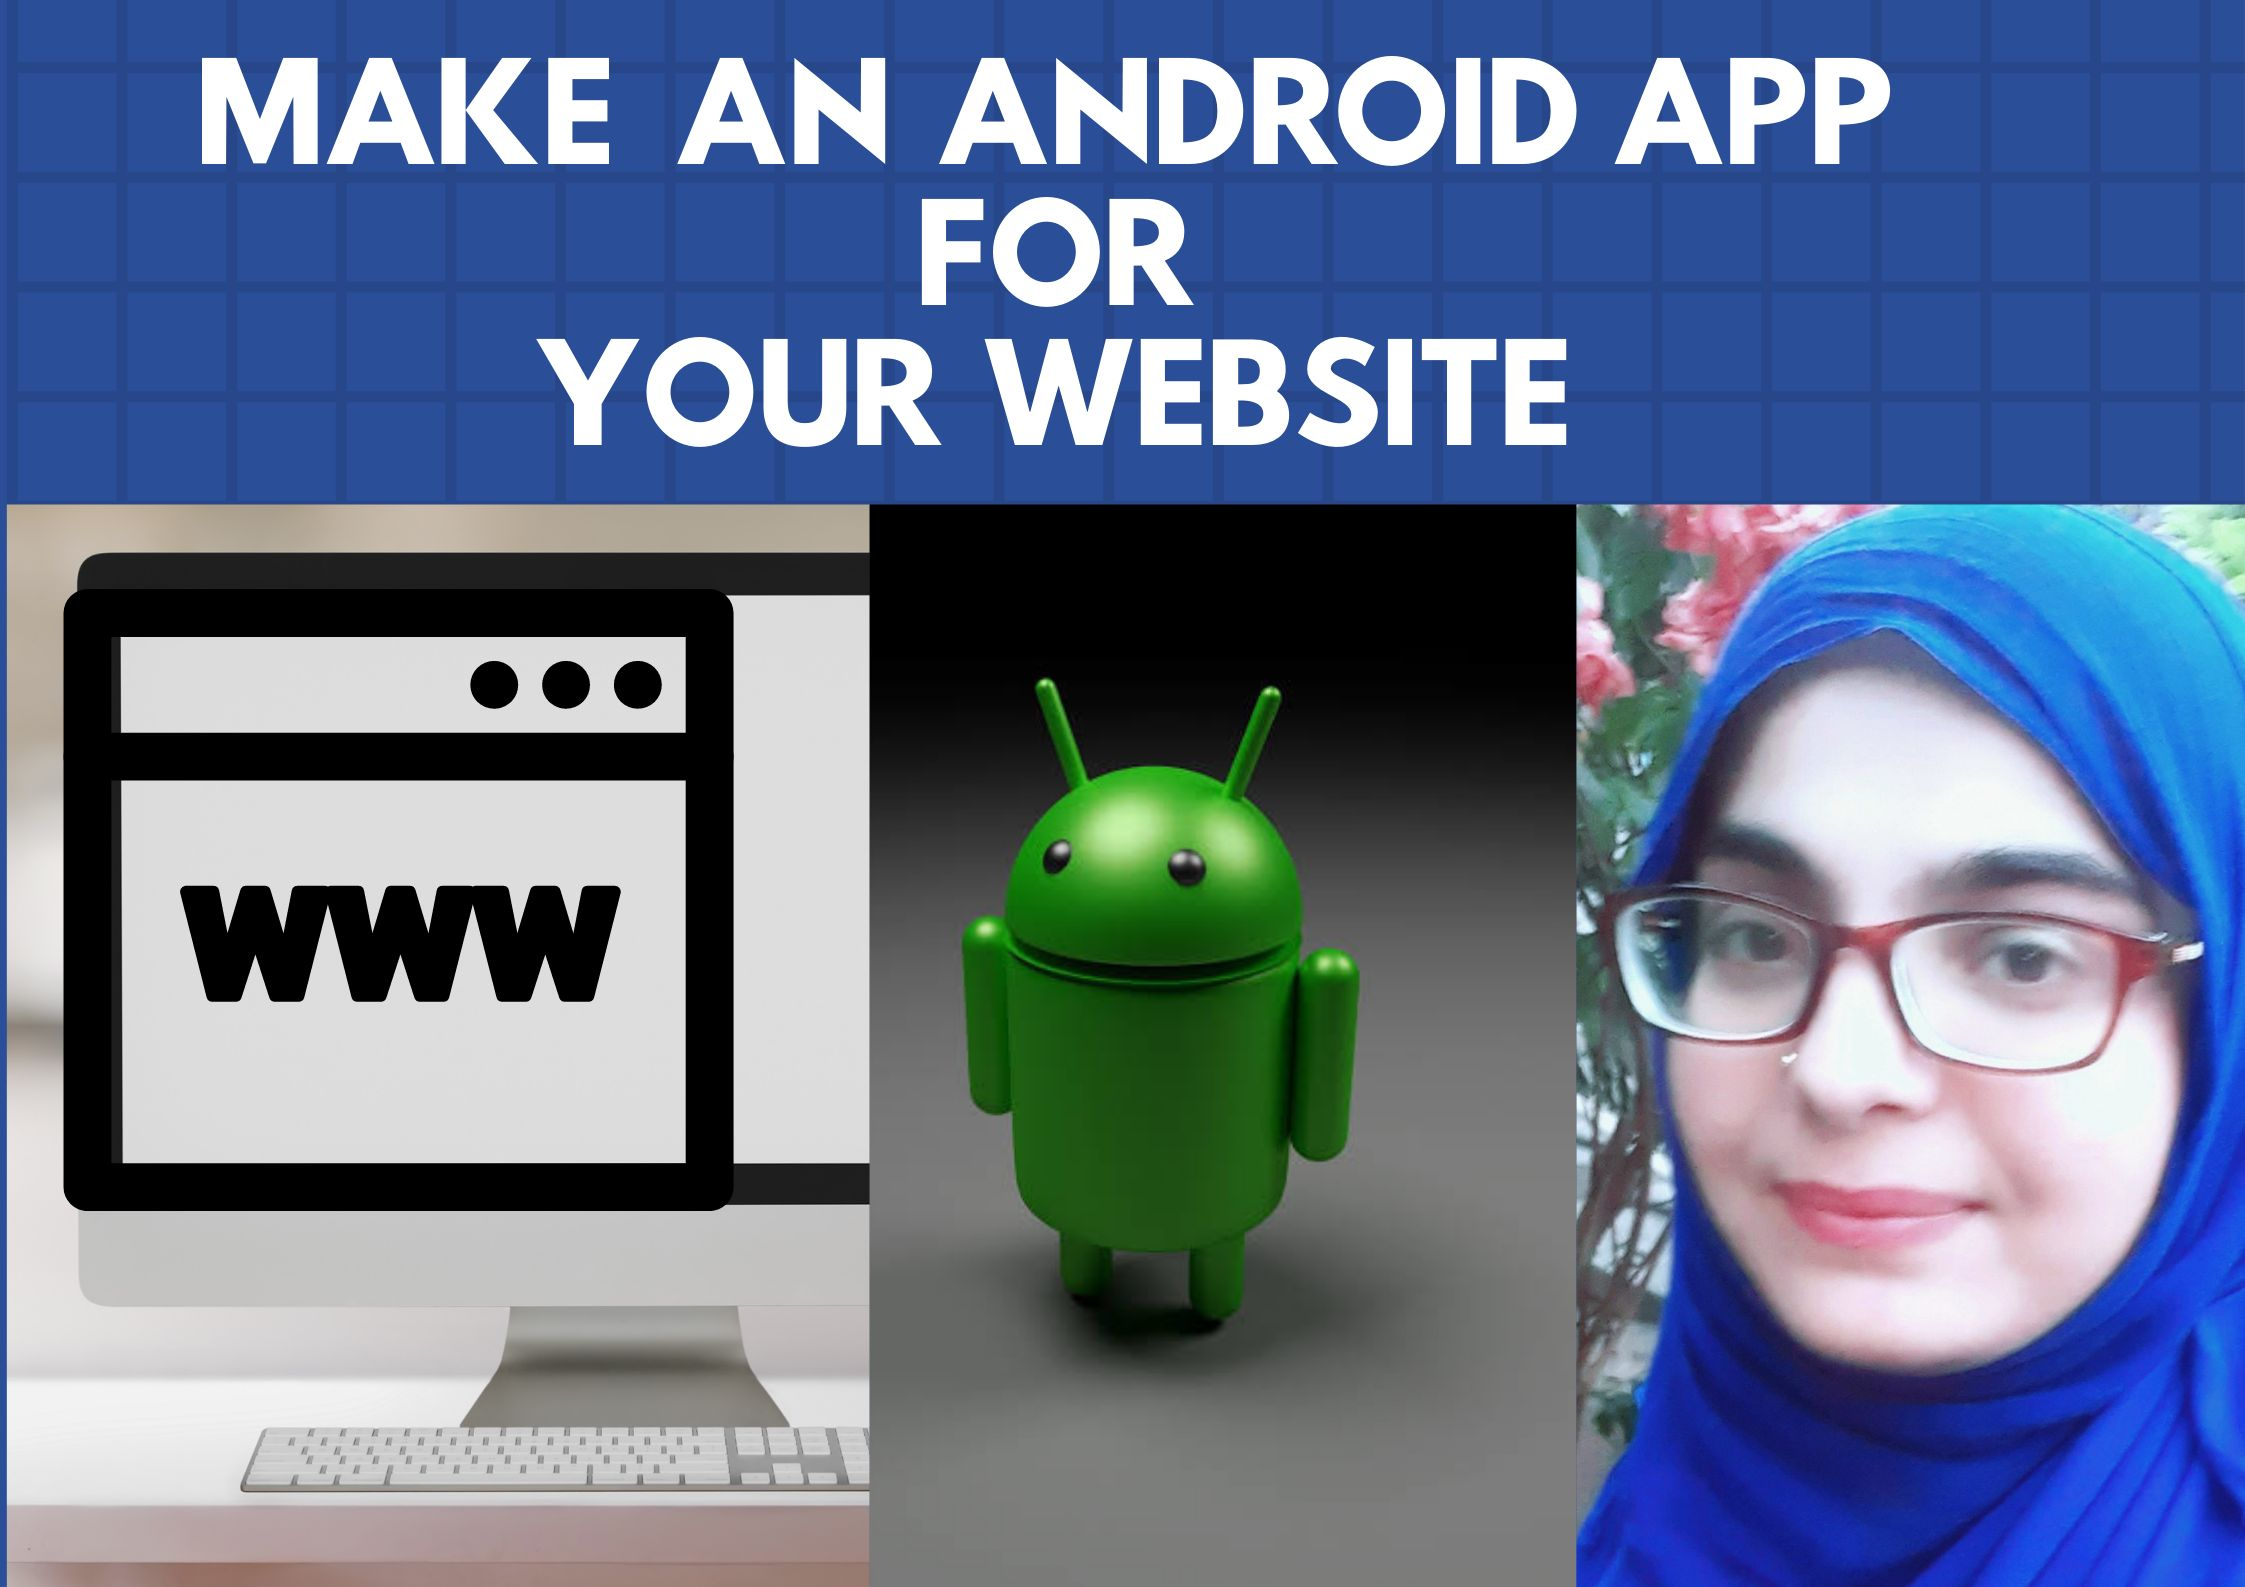 I will convert your website into a cool looking android app